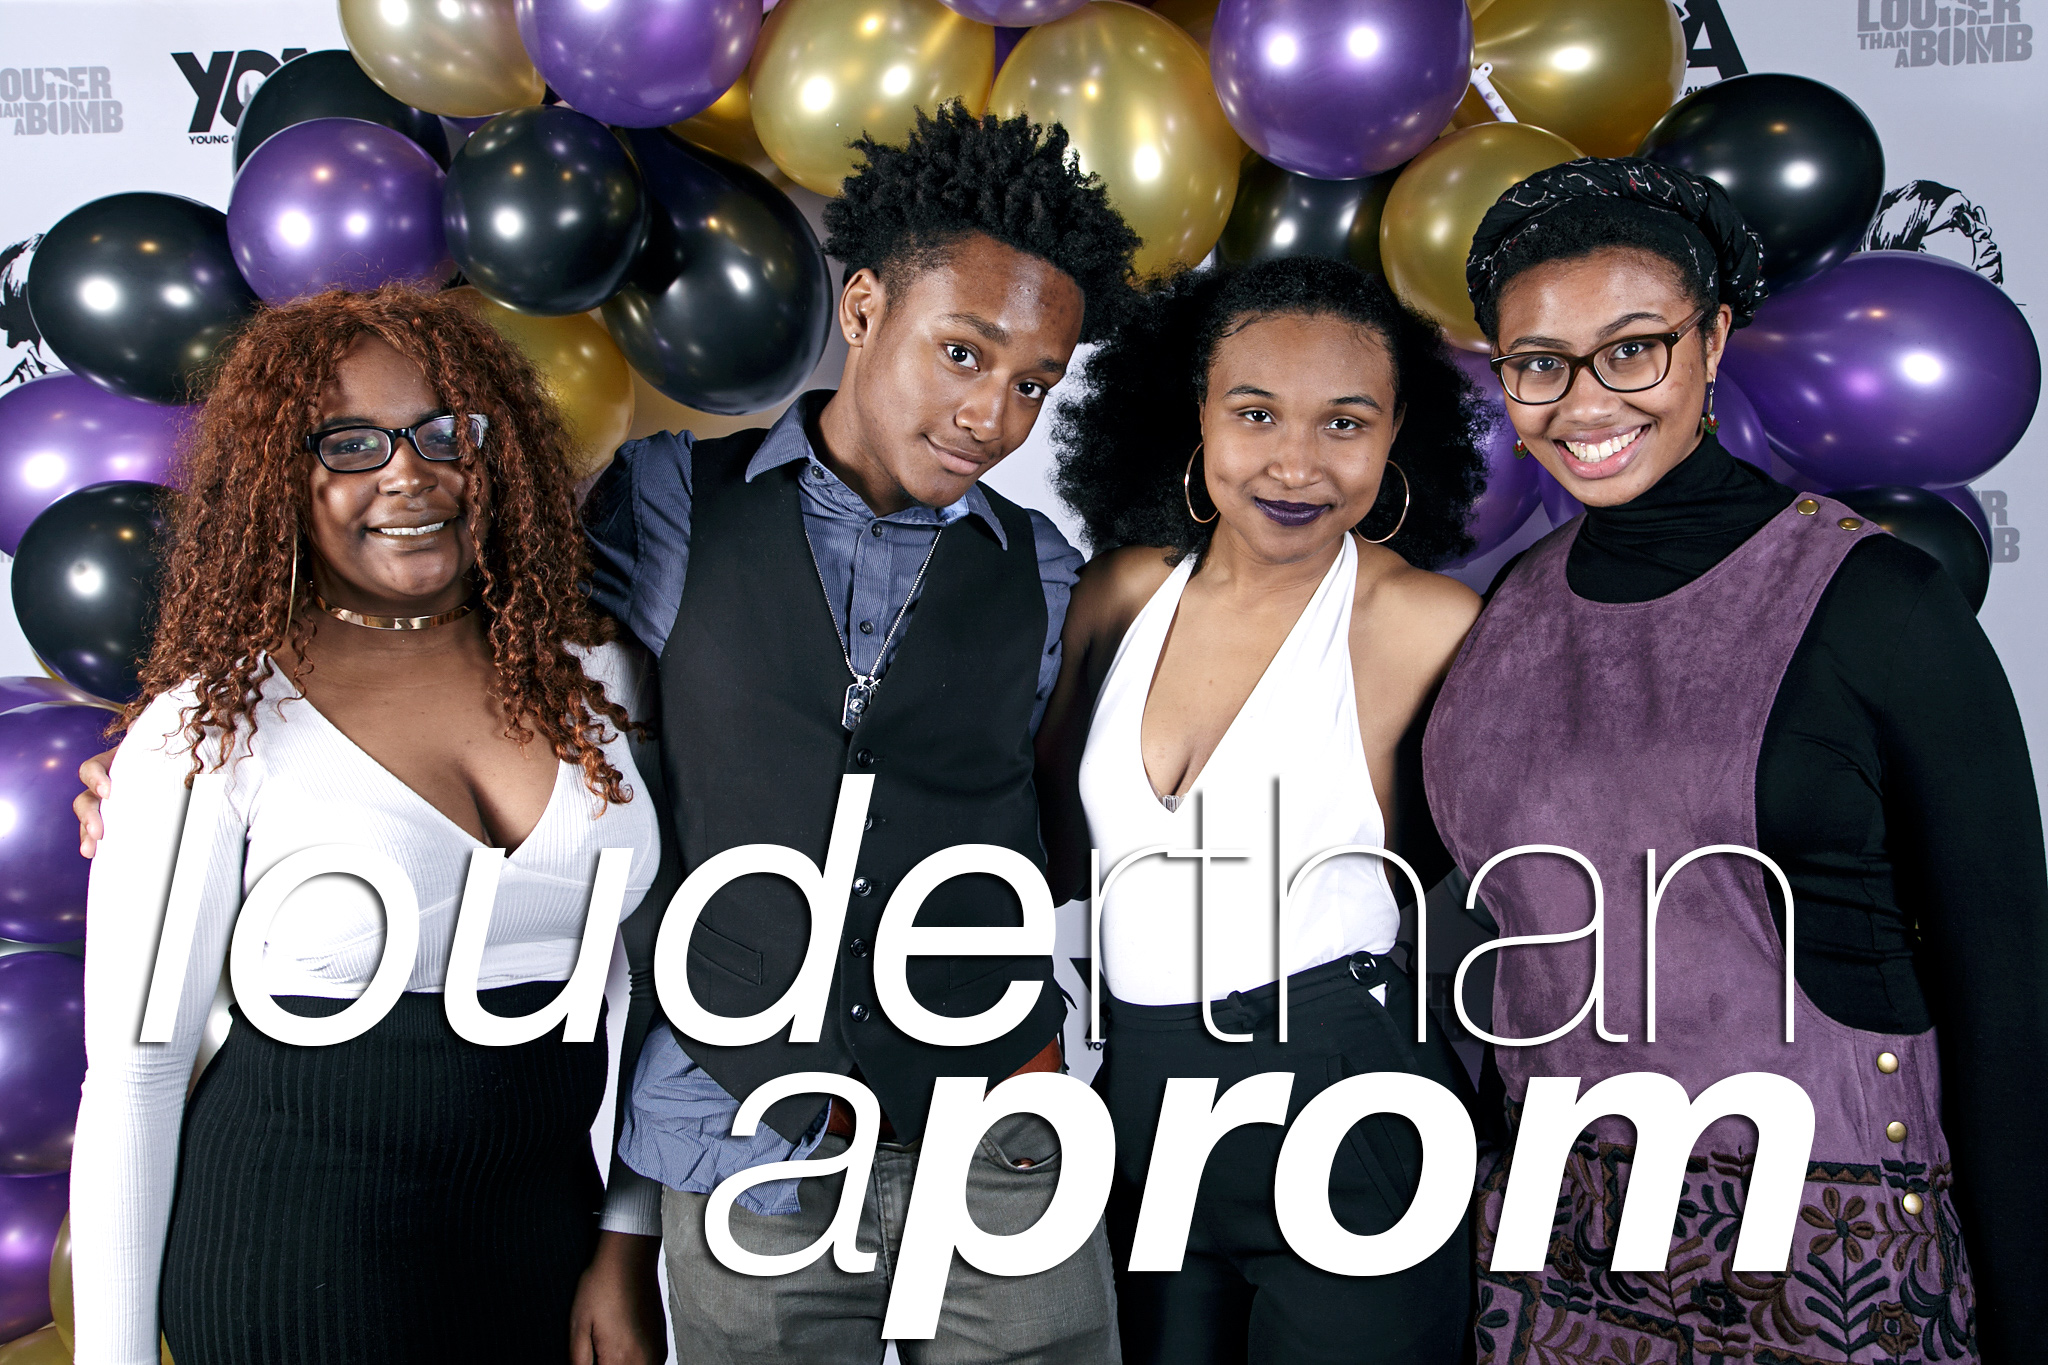 portrait booth photos from louder than a prom at concord, may 2017